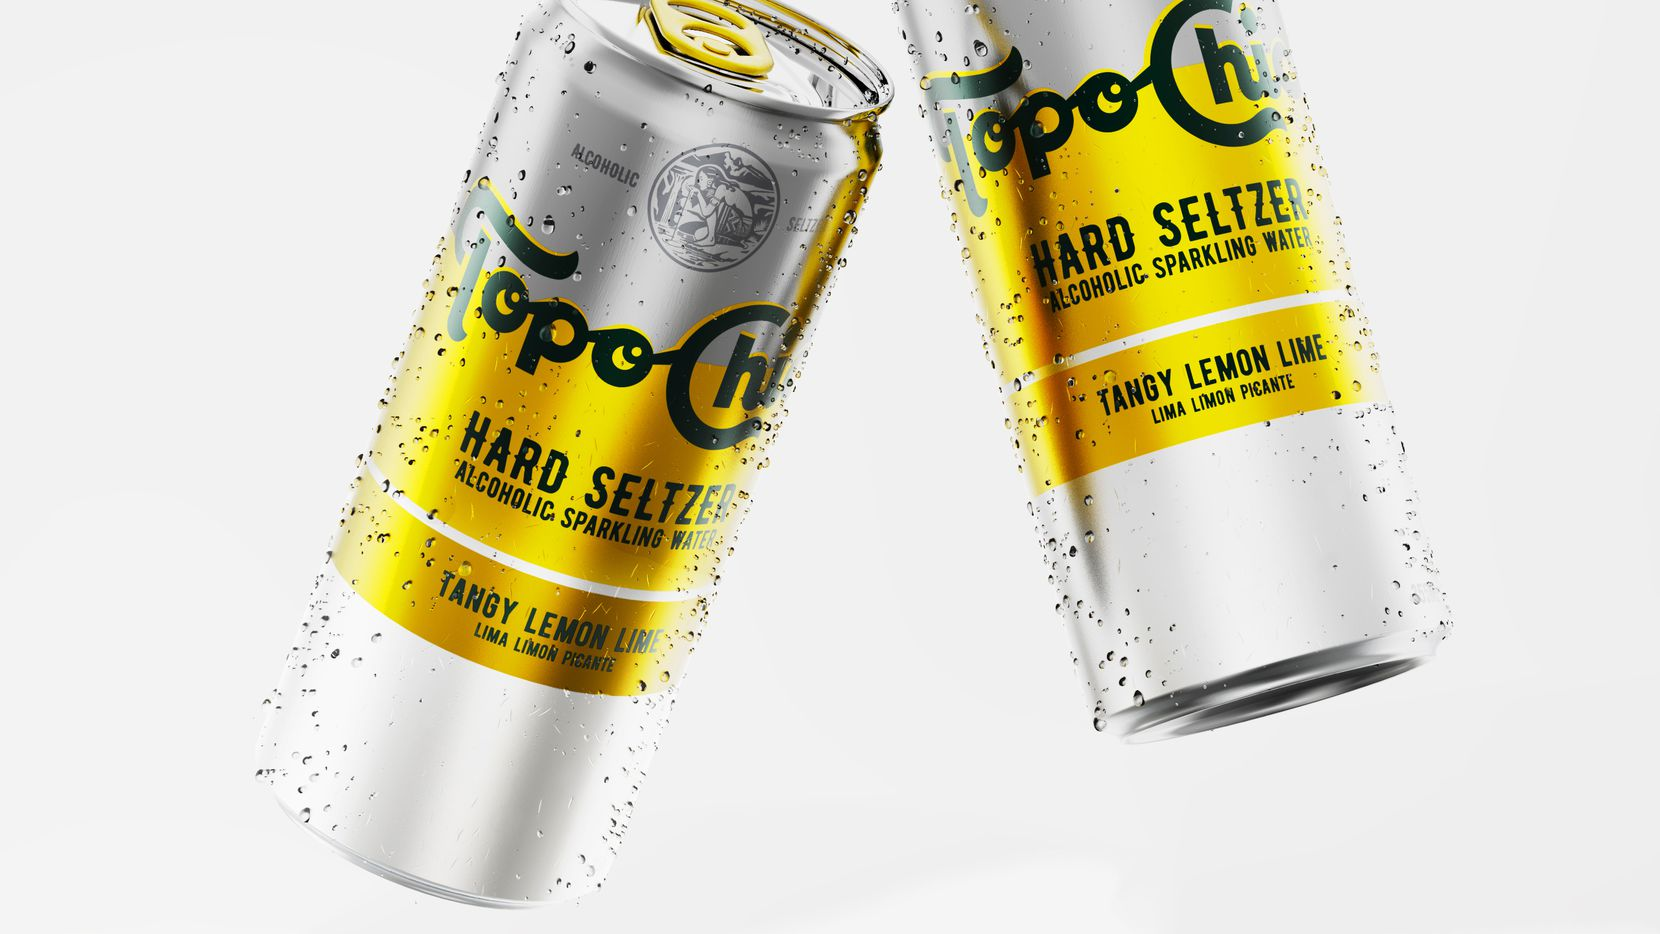 A new Topo Chico hard seltzer is set to debut in the United States in 2021.